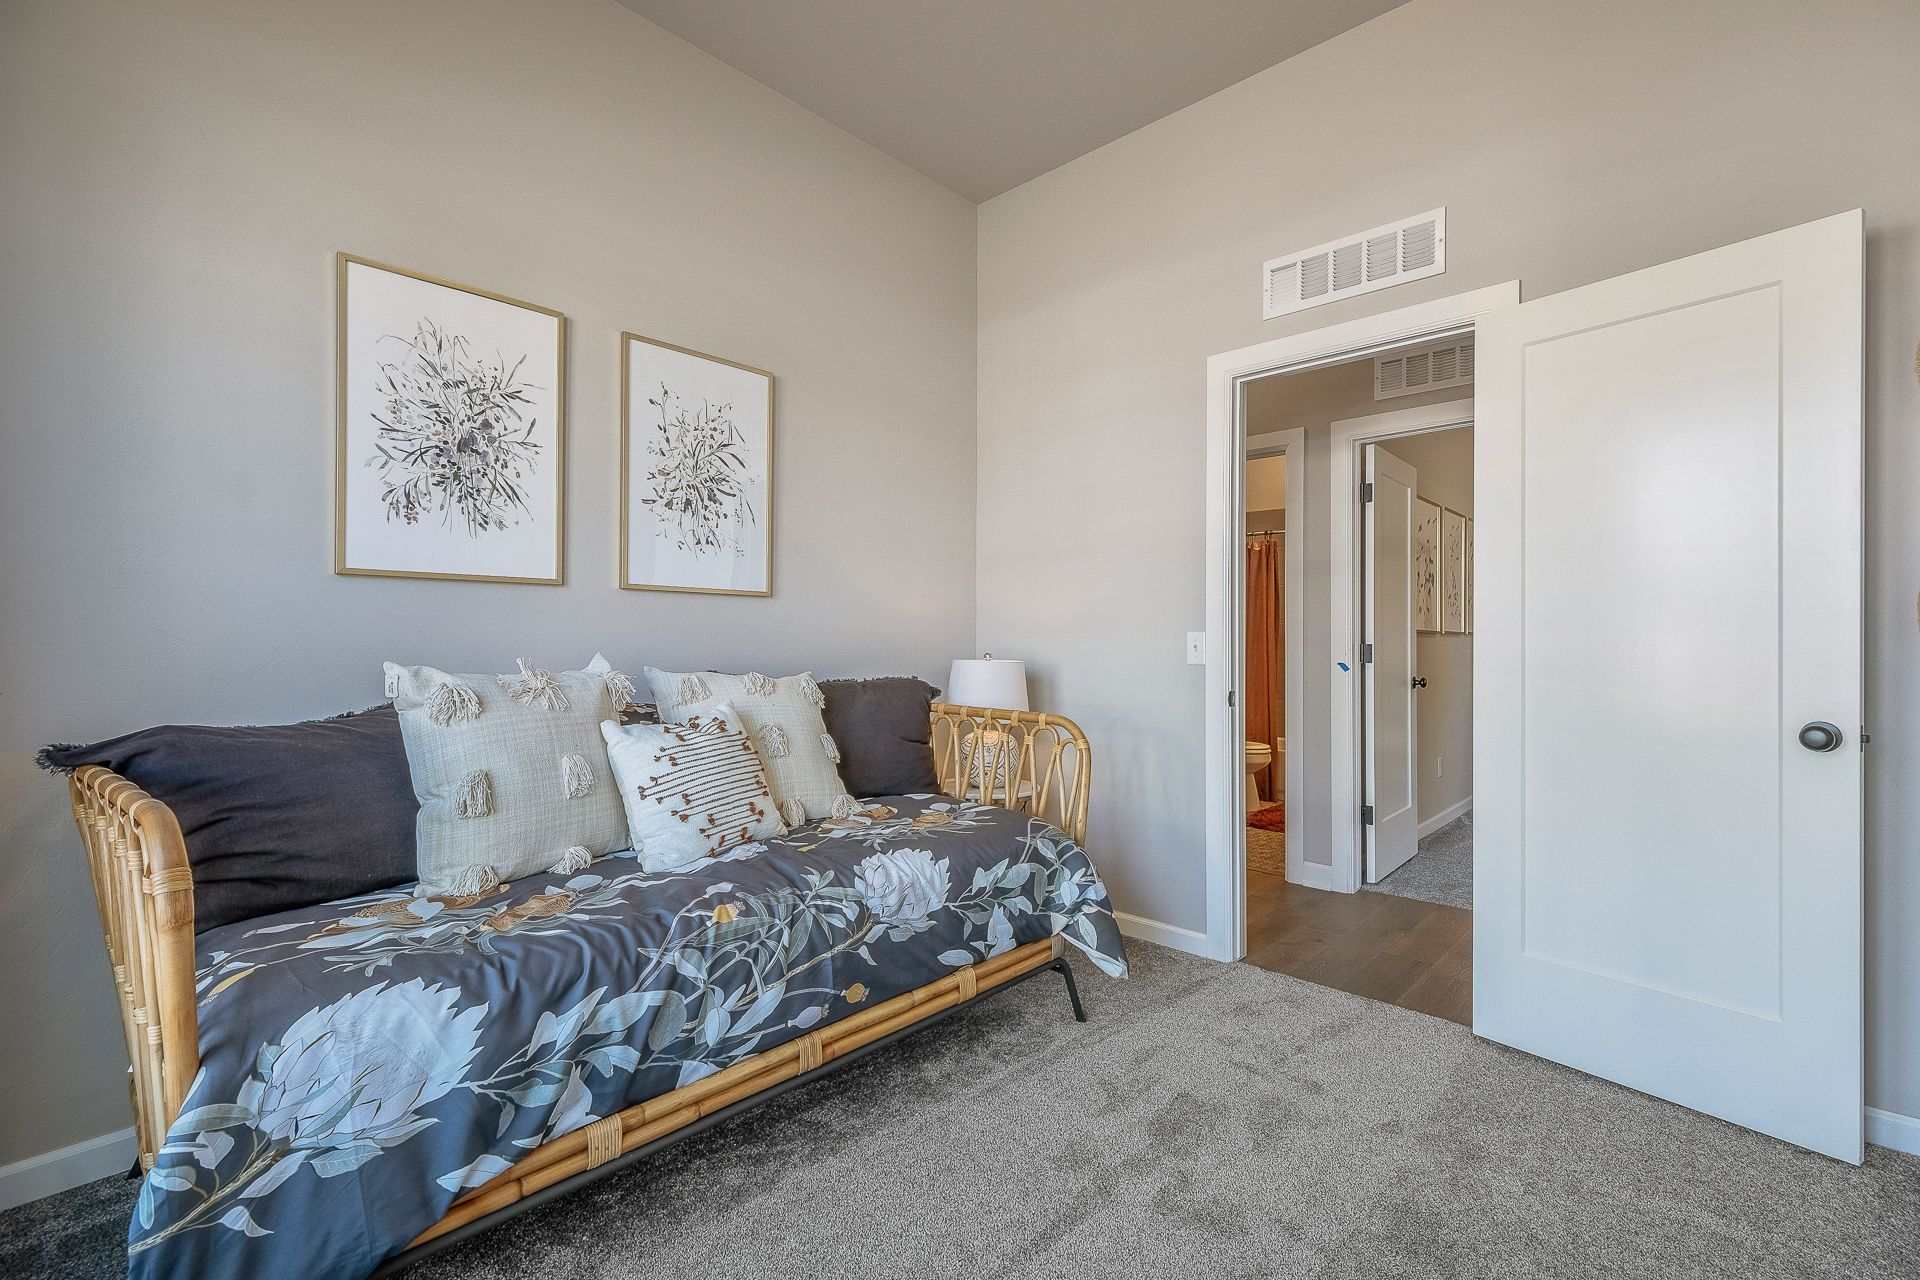 Bedroom featured in the Jacobson By Ideal Homes in Oklahoma City, OK